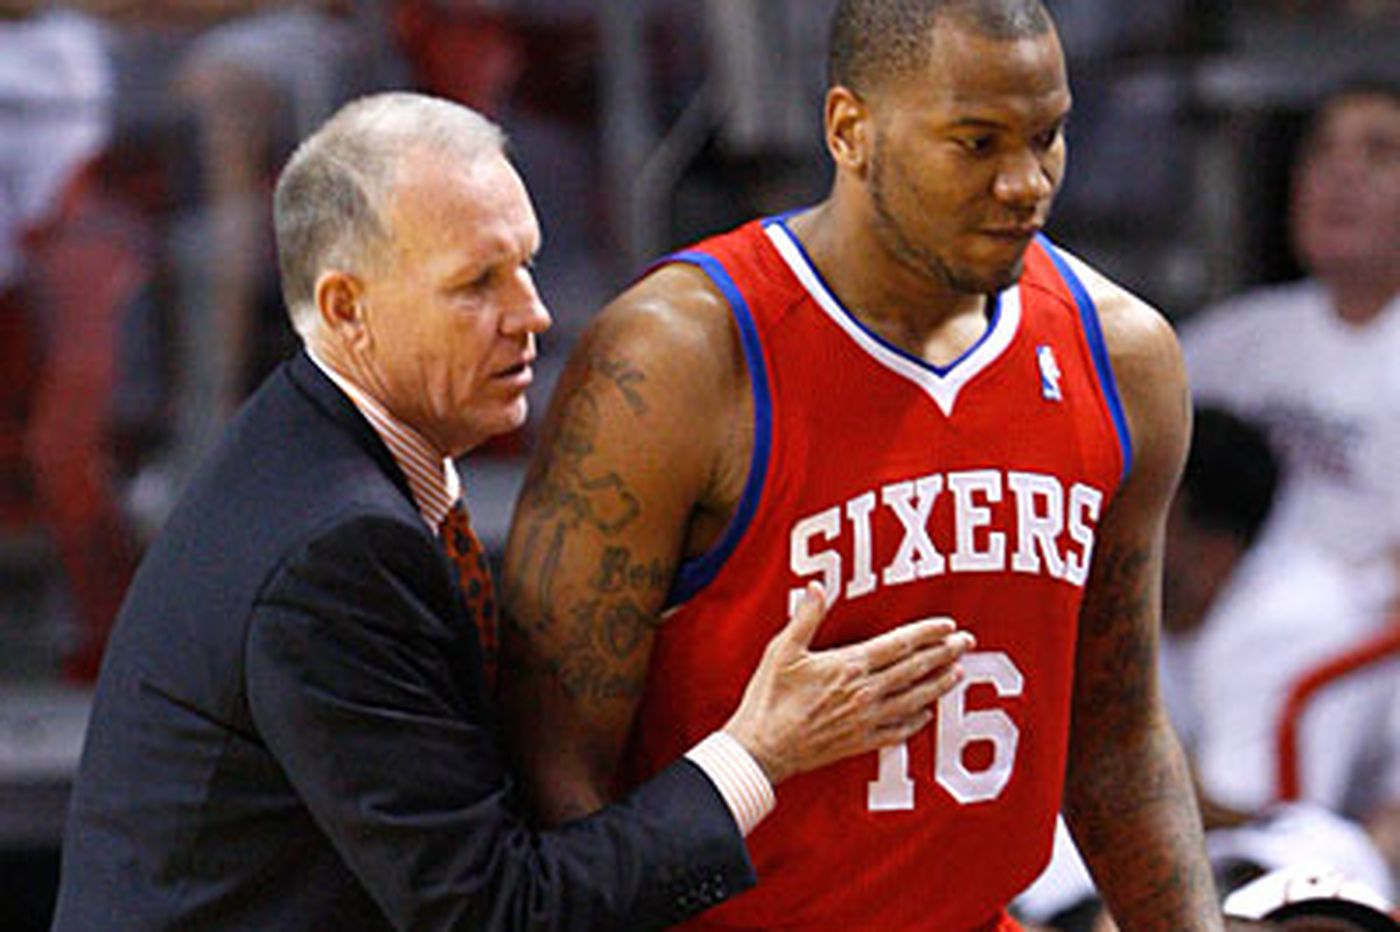 Sixers looking for more from Speights